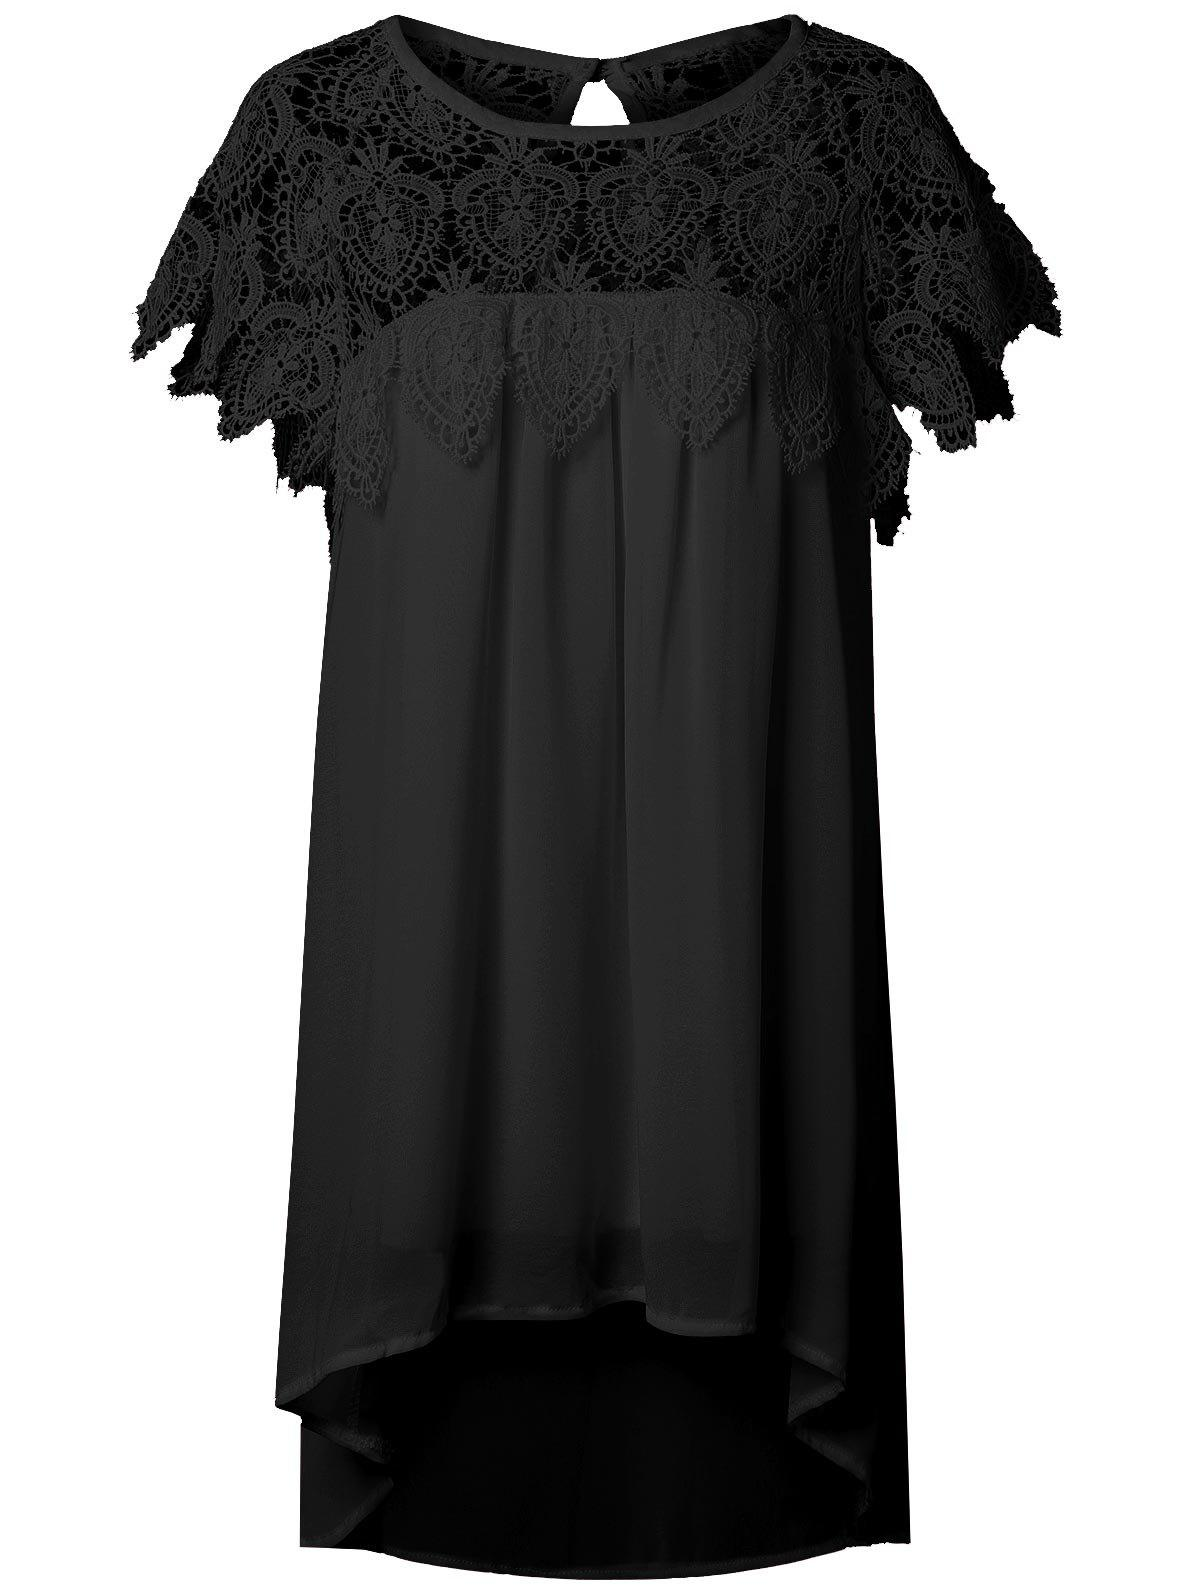 Affordable Lace Panel Chiffon Tunic Shift Summer Dress